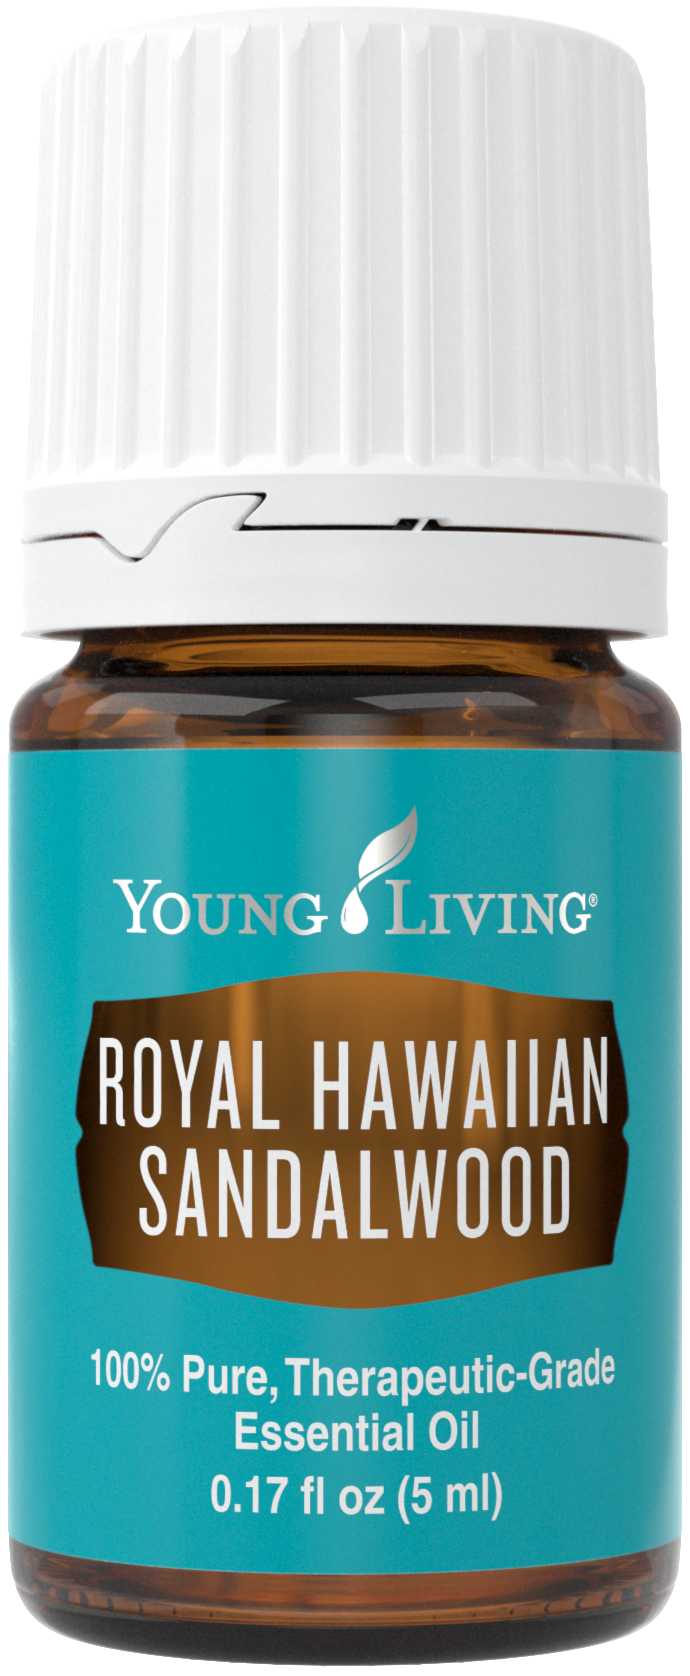 Minyak esensial Royal Hawaiian Cendana | Young Living